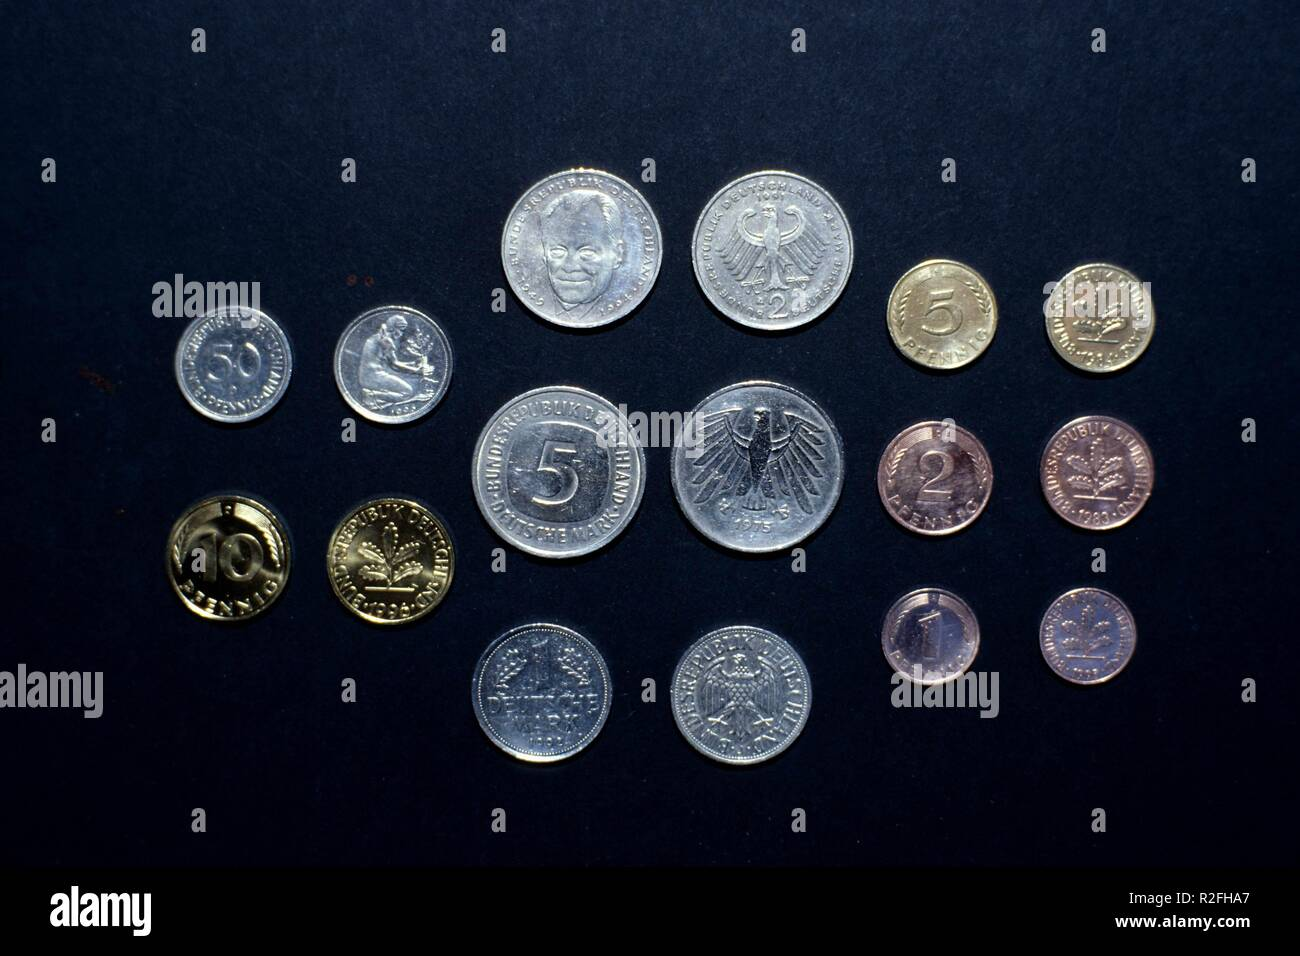 coins of the dm - Stock Image